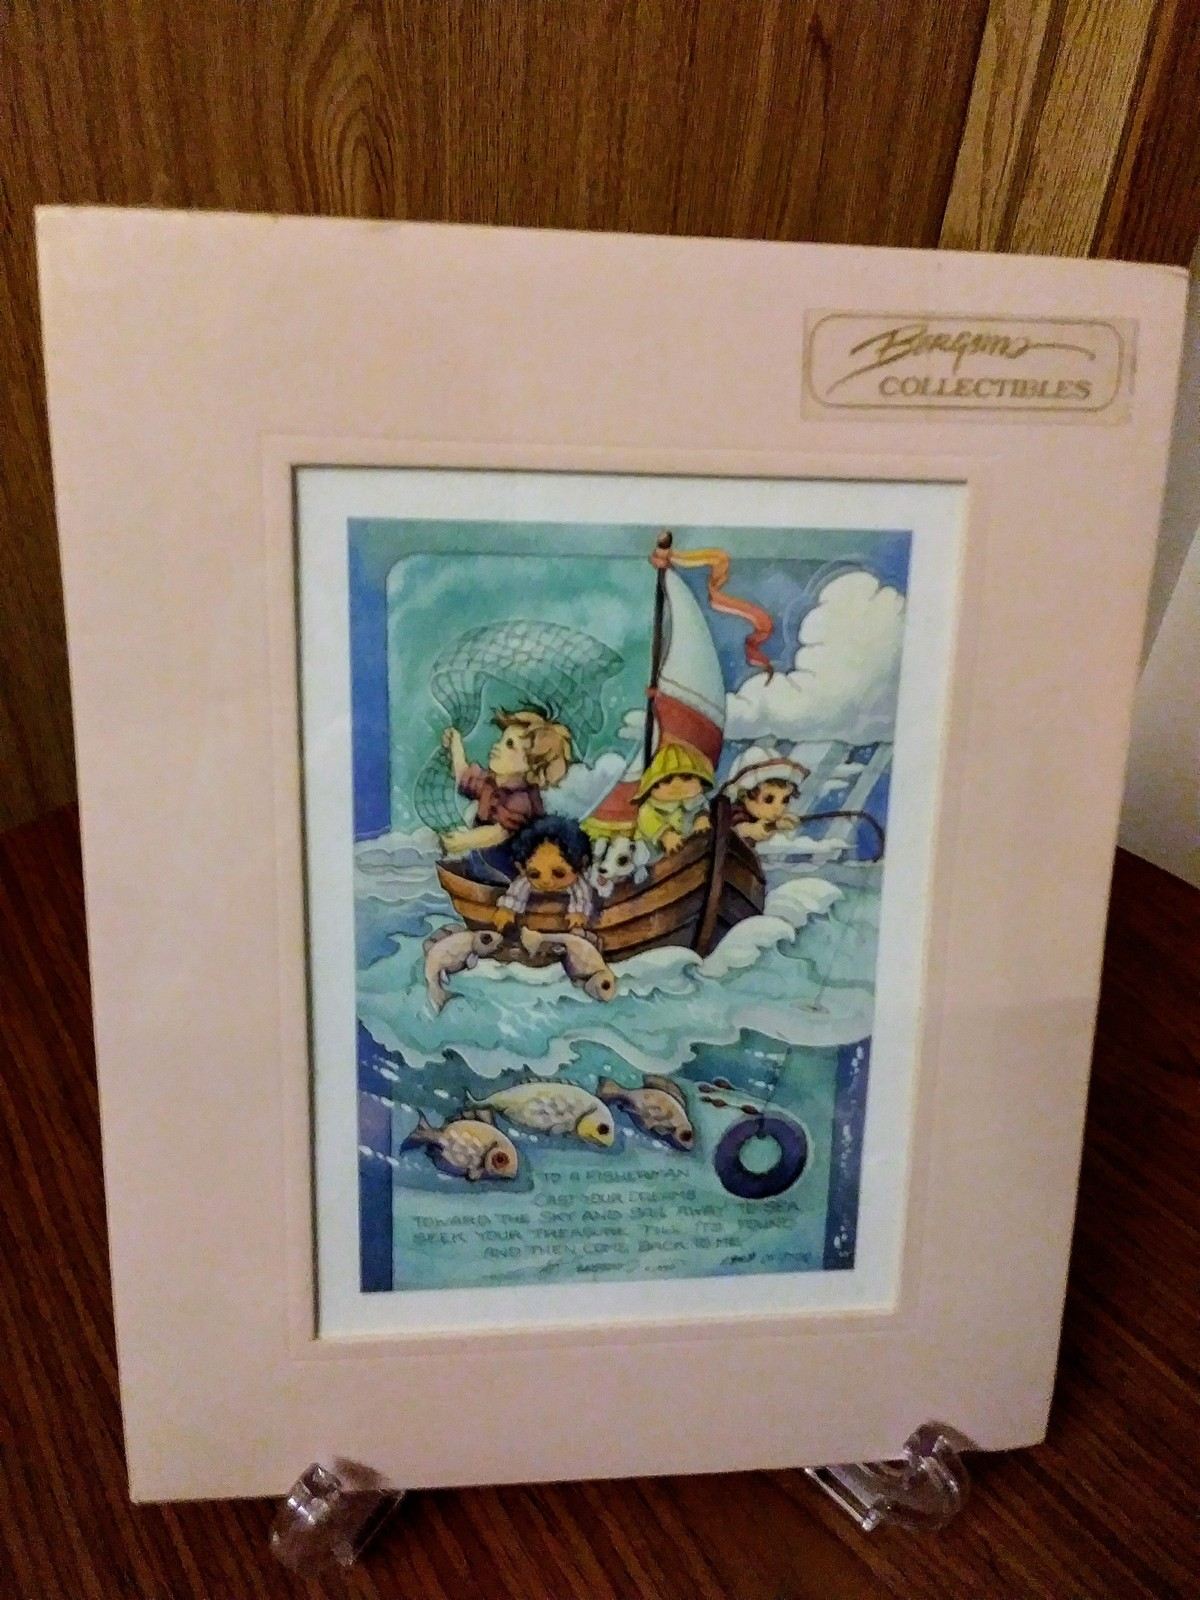 "Collectibles Whimsical ""To A Fisherman"" Signed 1990 Limited Lithographic  Waterc"